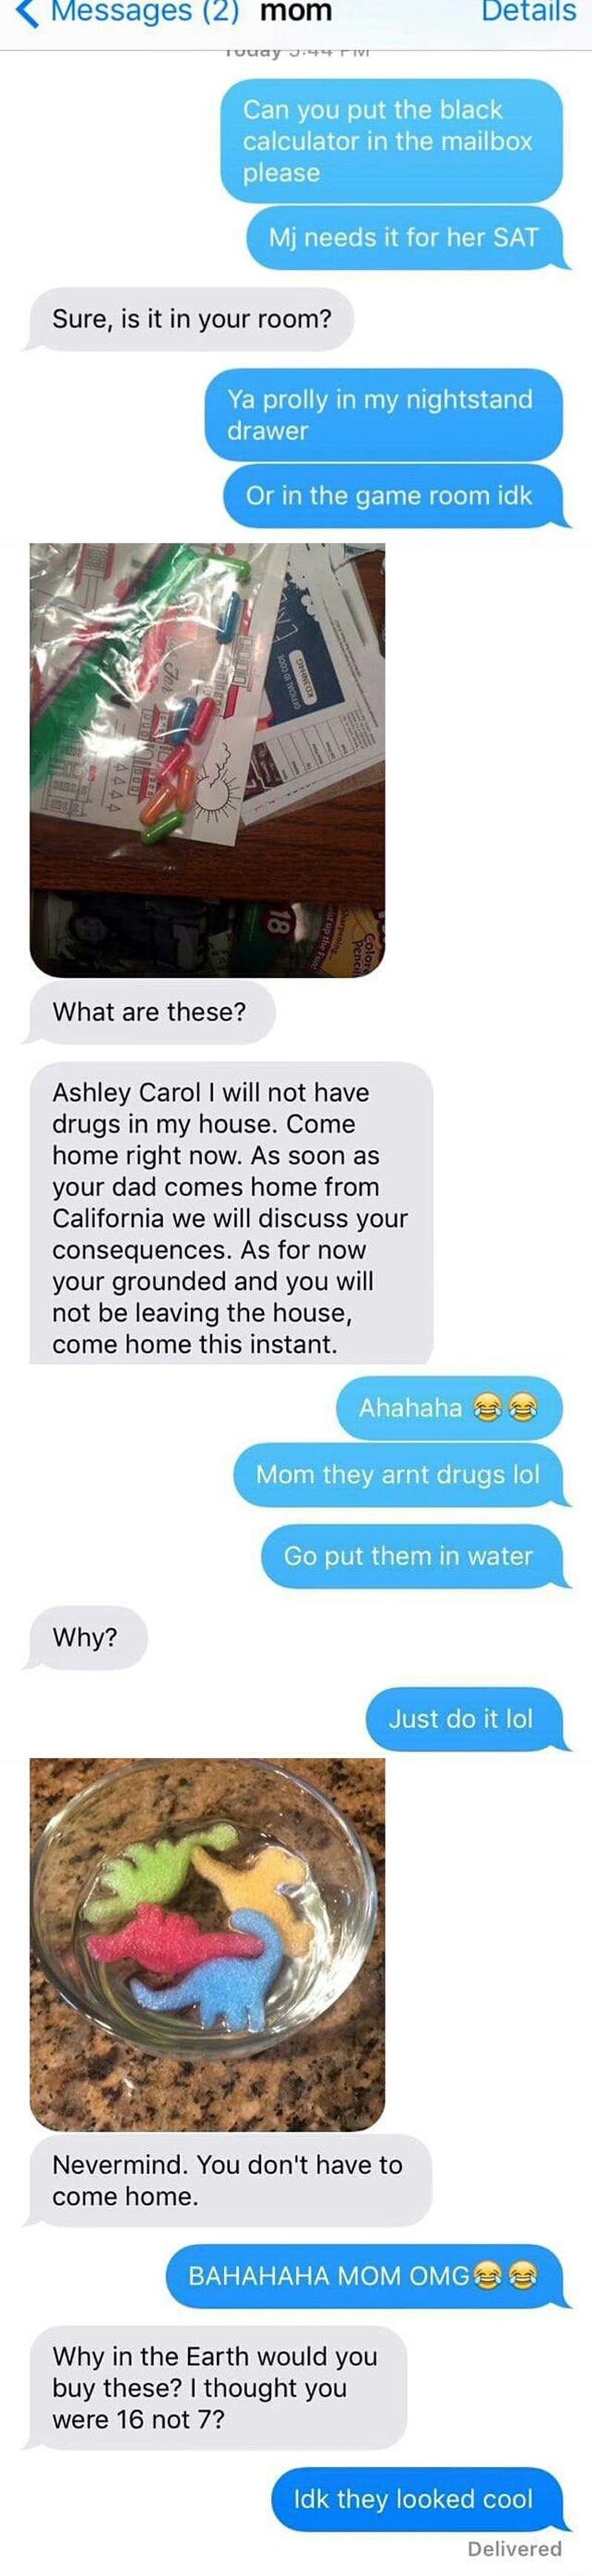 pills-drugs-mom-text